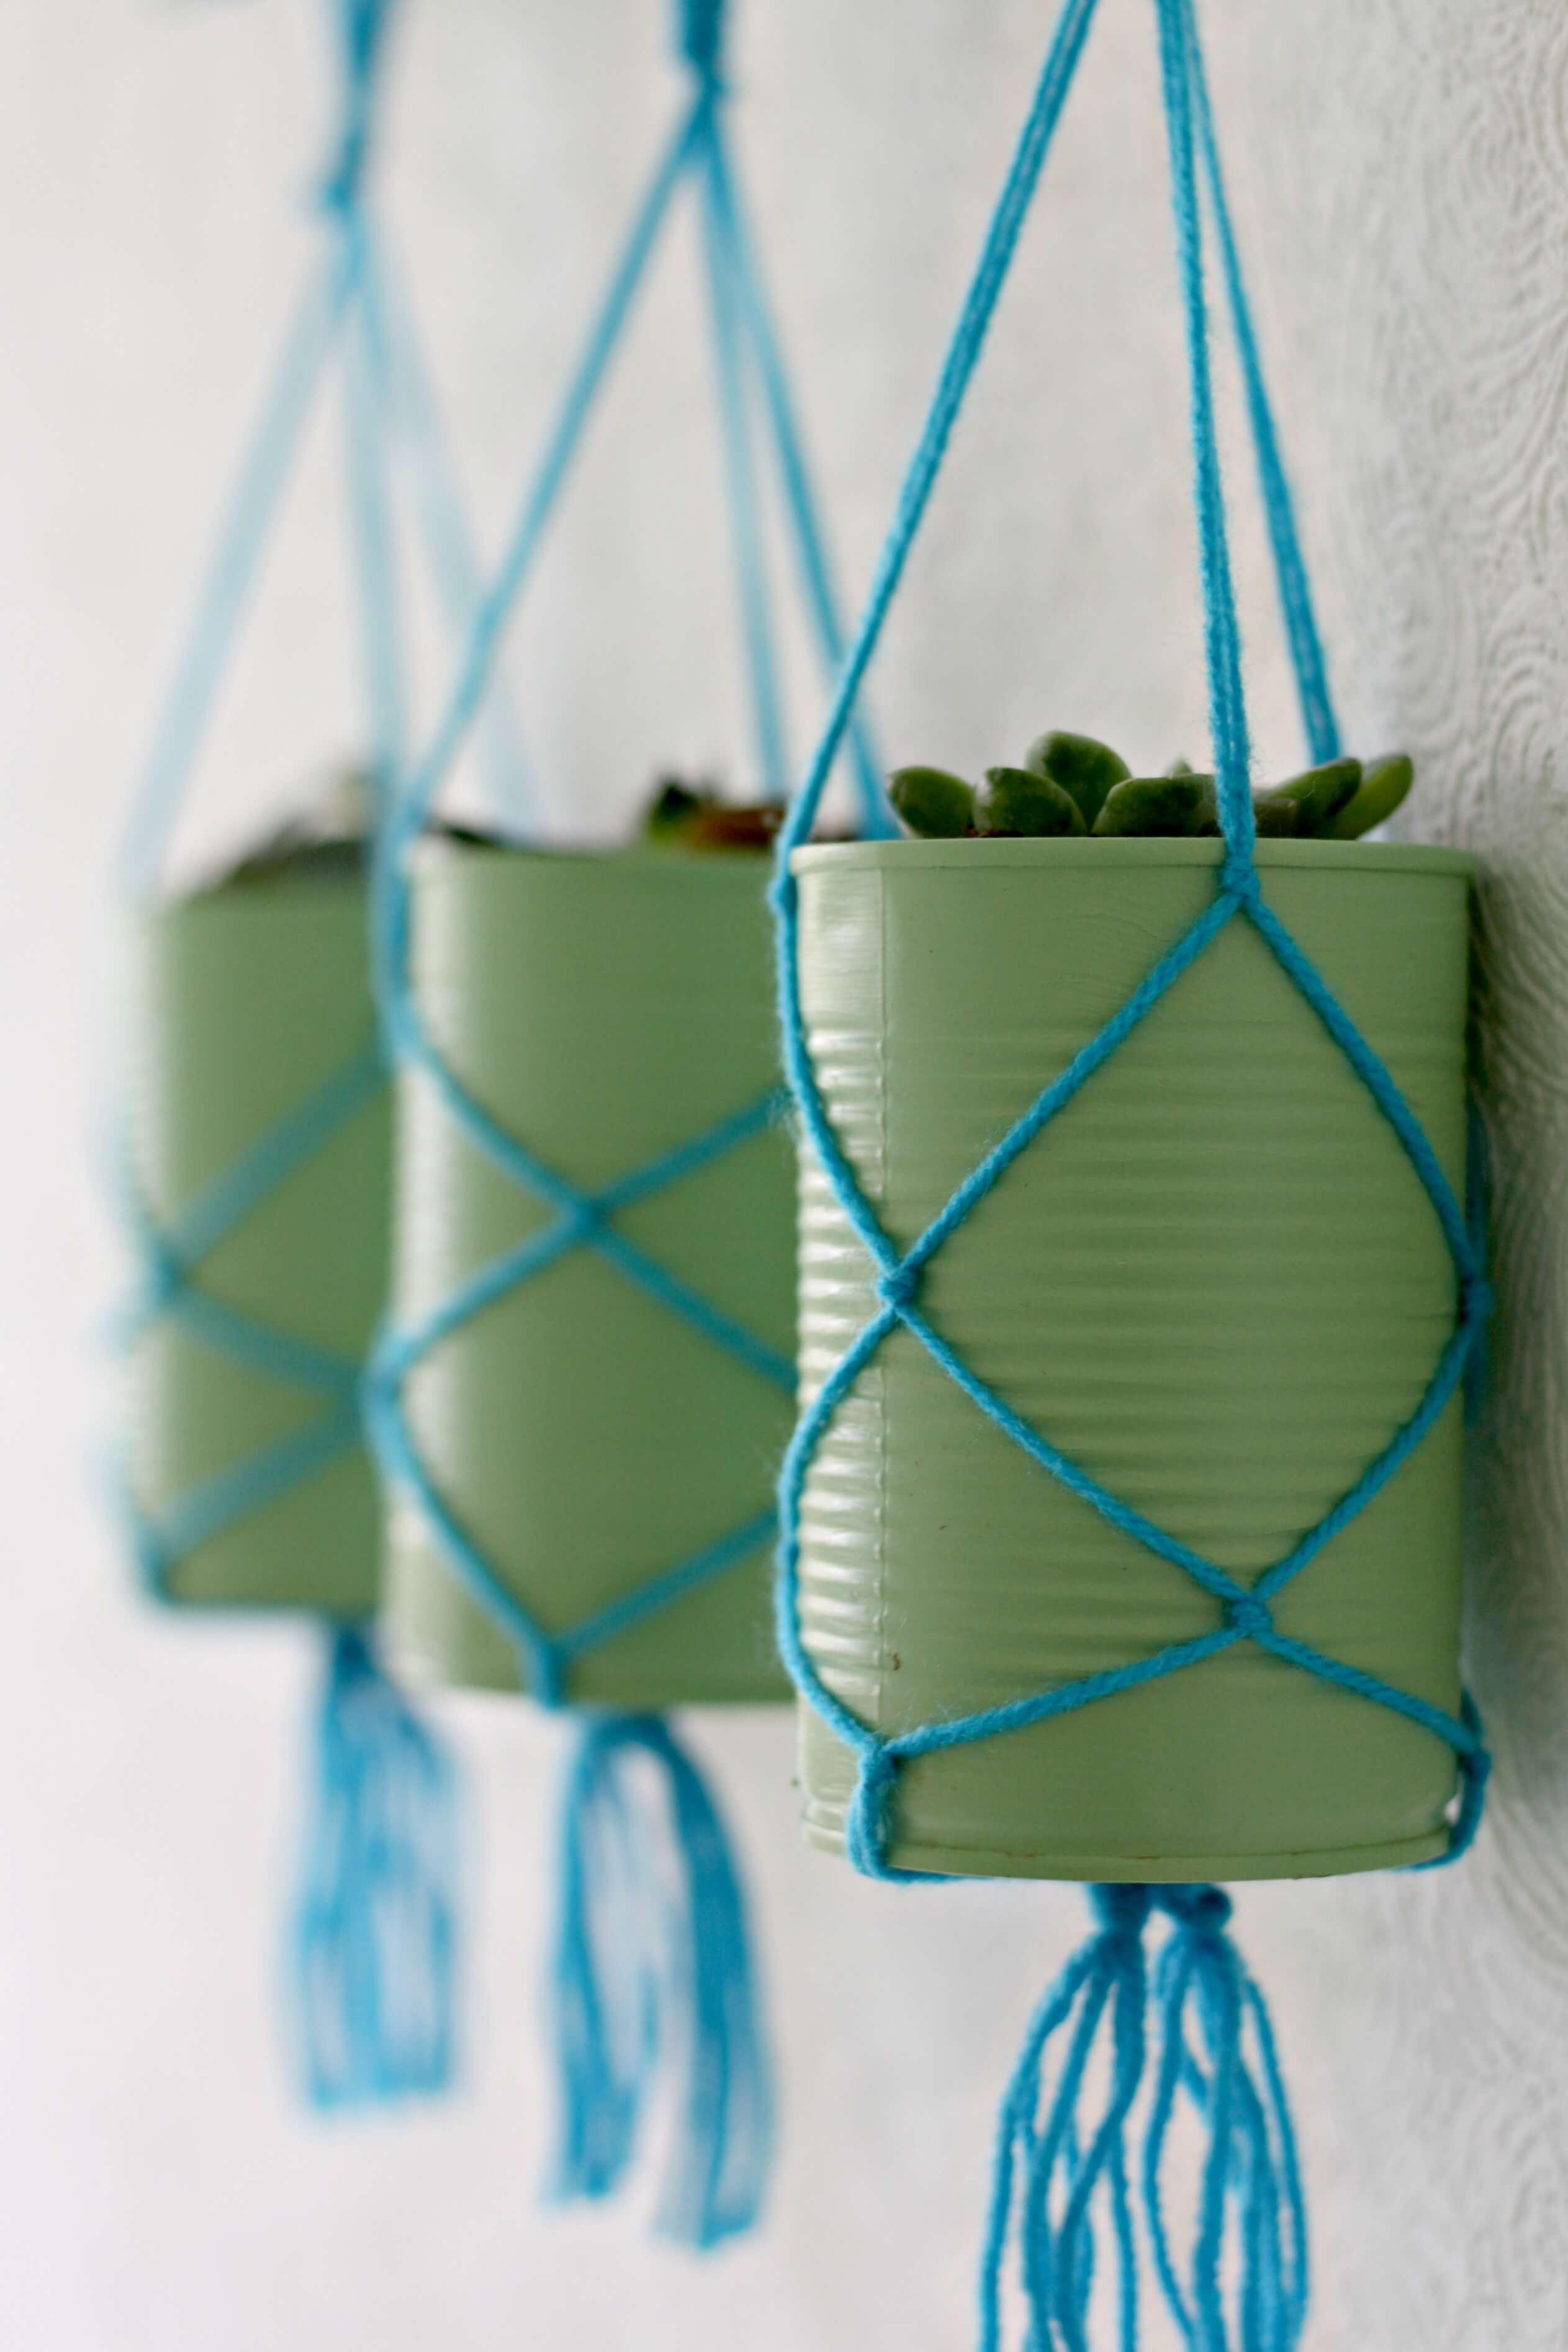 Springtime Colorful Rustic Hanging Planters